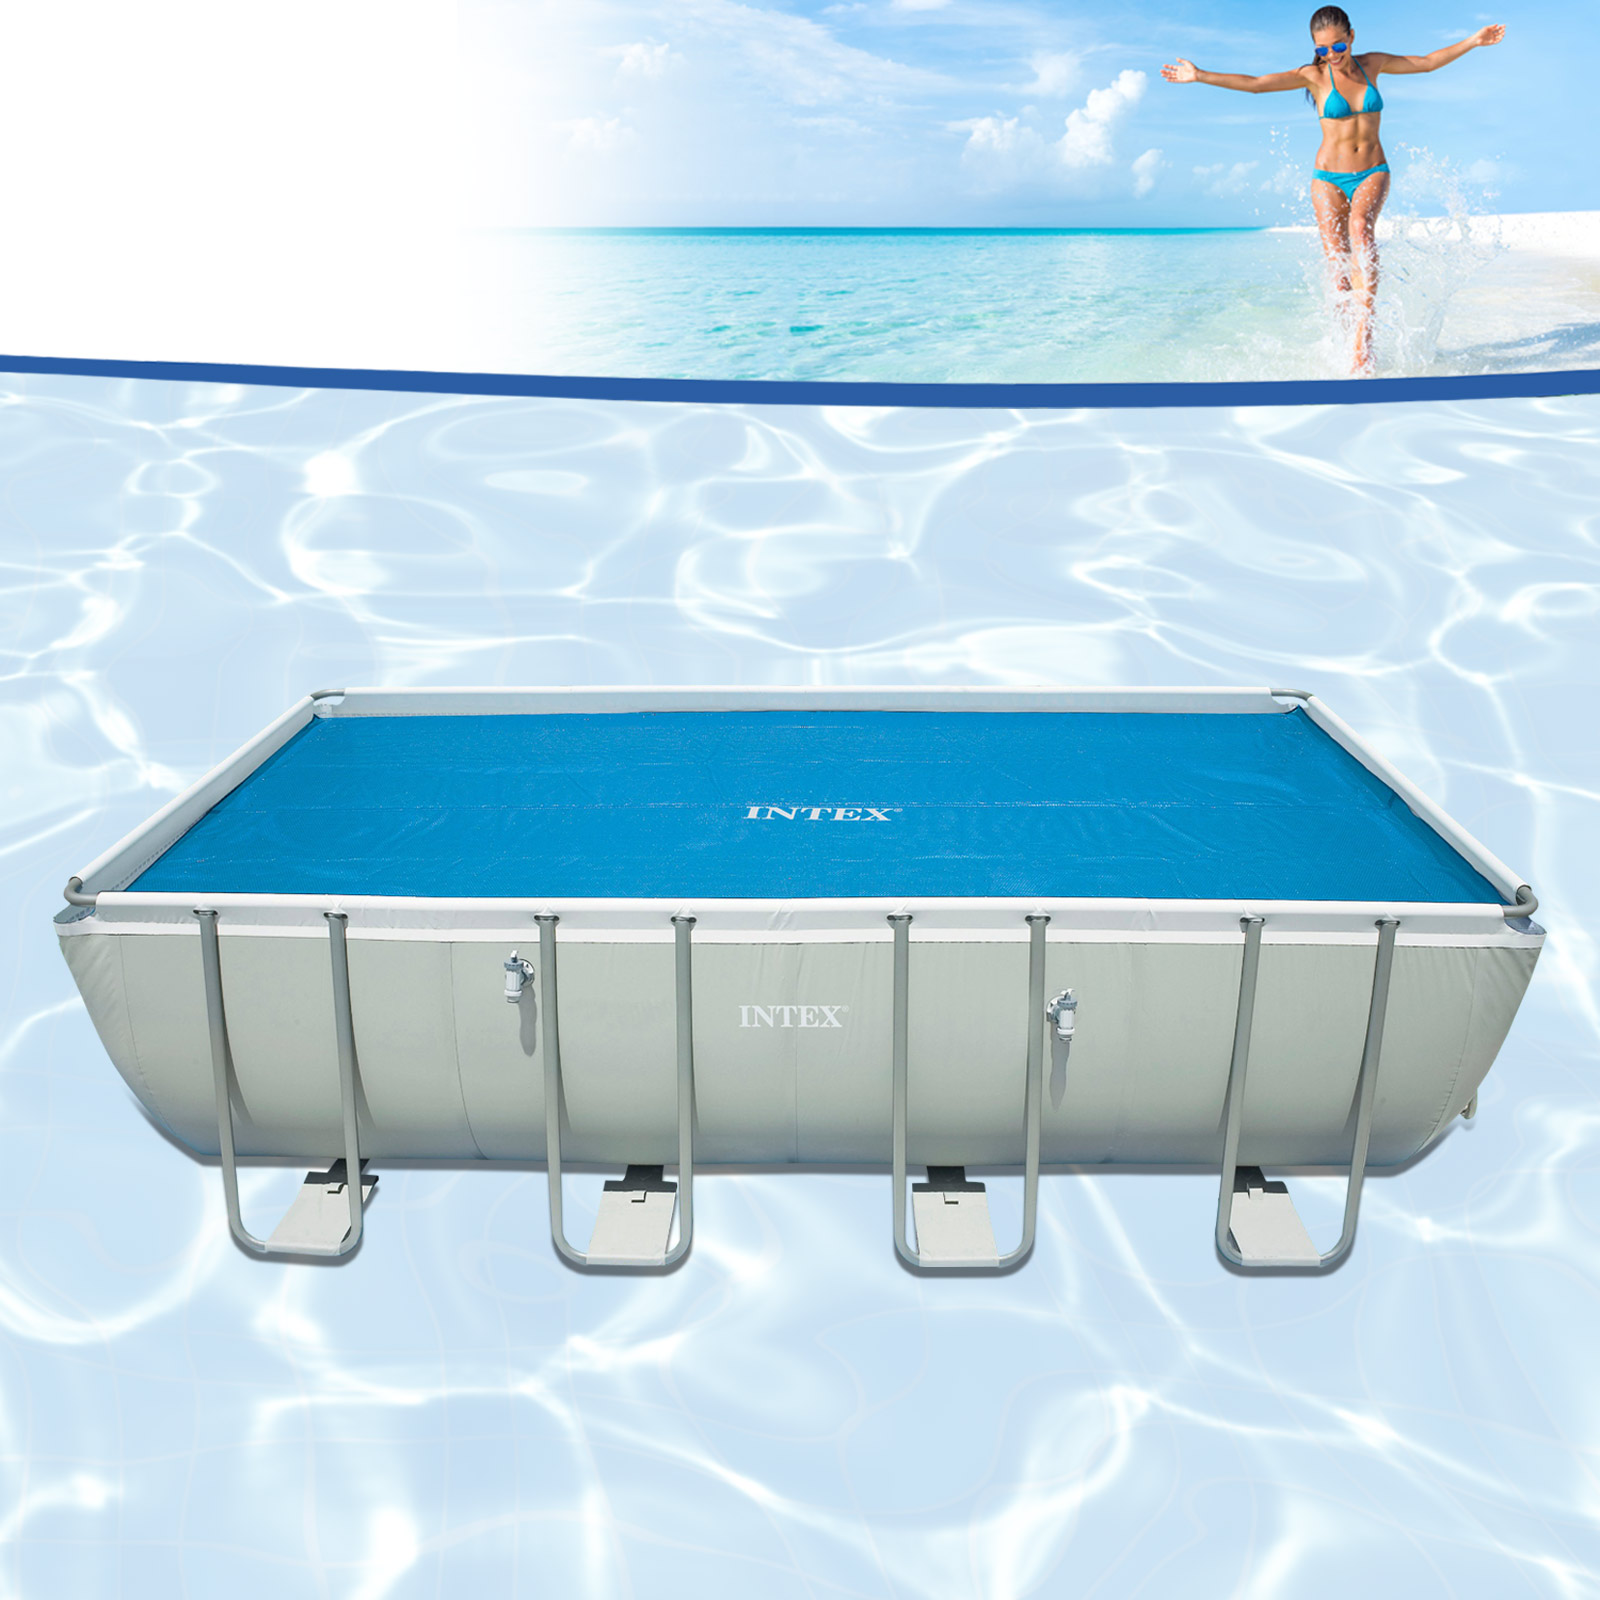 Solarplane Pool Intex Details Zu Intex Solarfolie 975x488 Pool Solarplane Wärme Solarheizung Blau Poolheizung